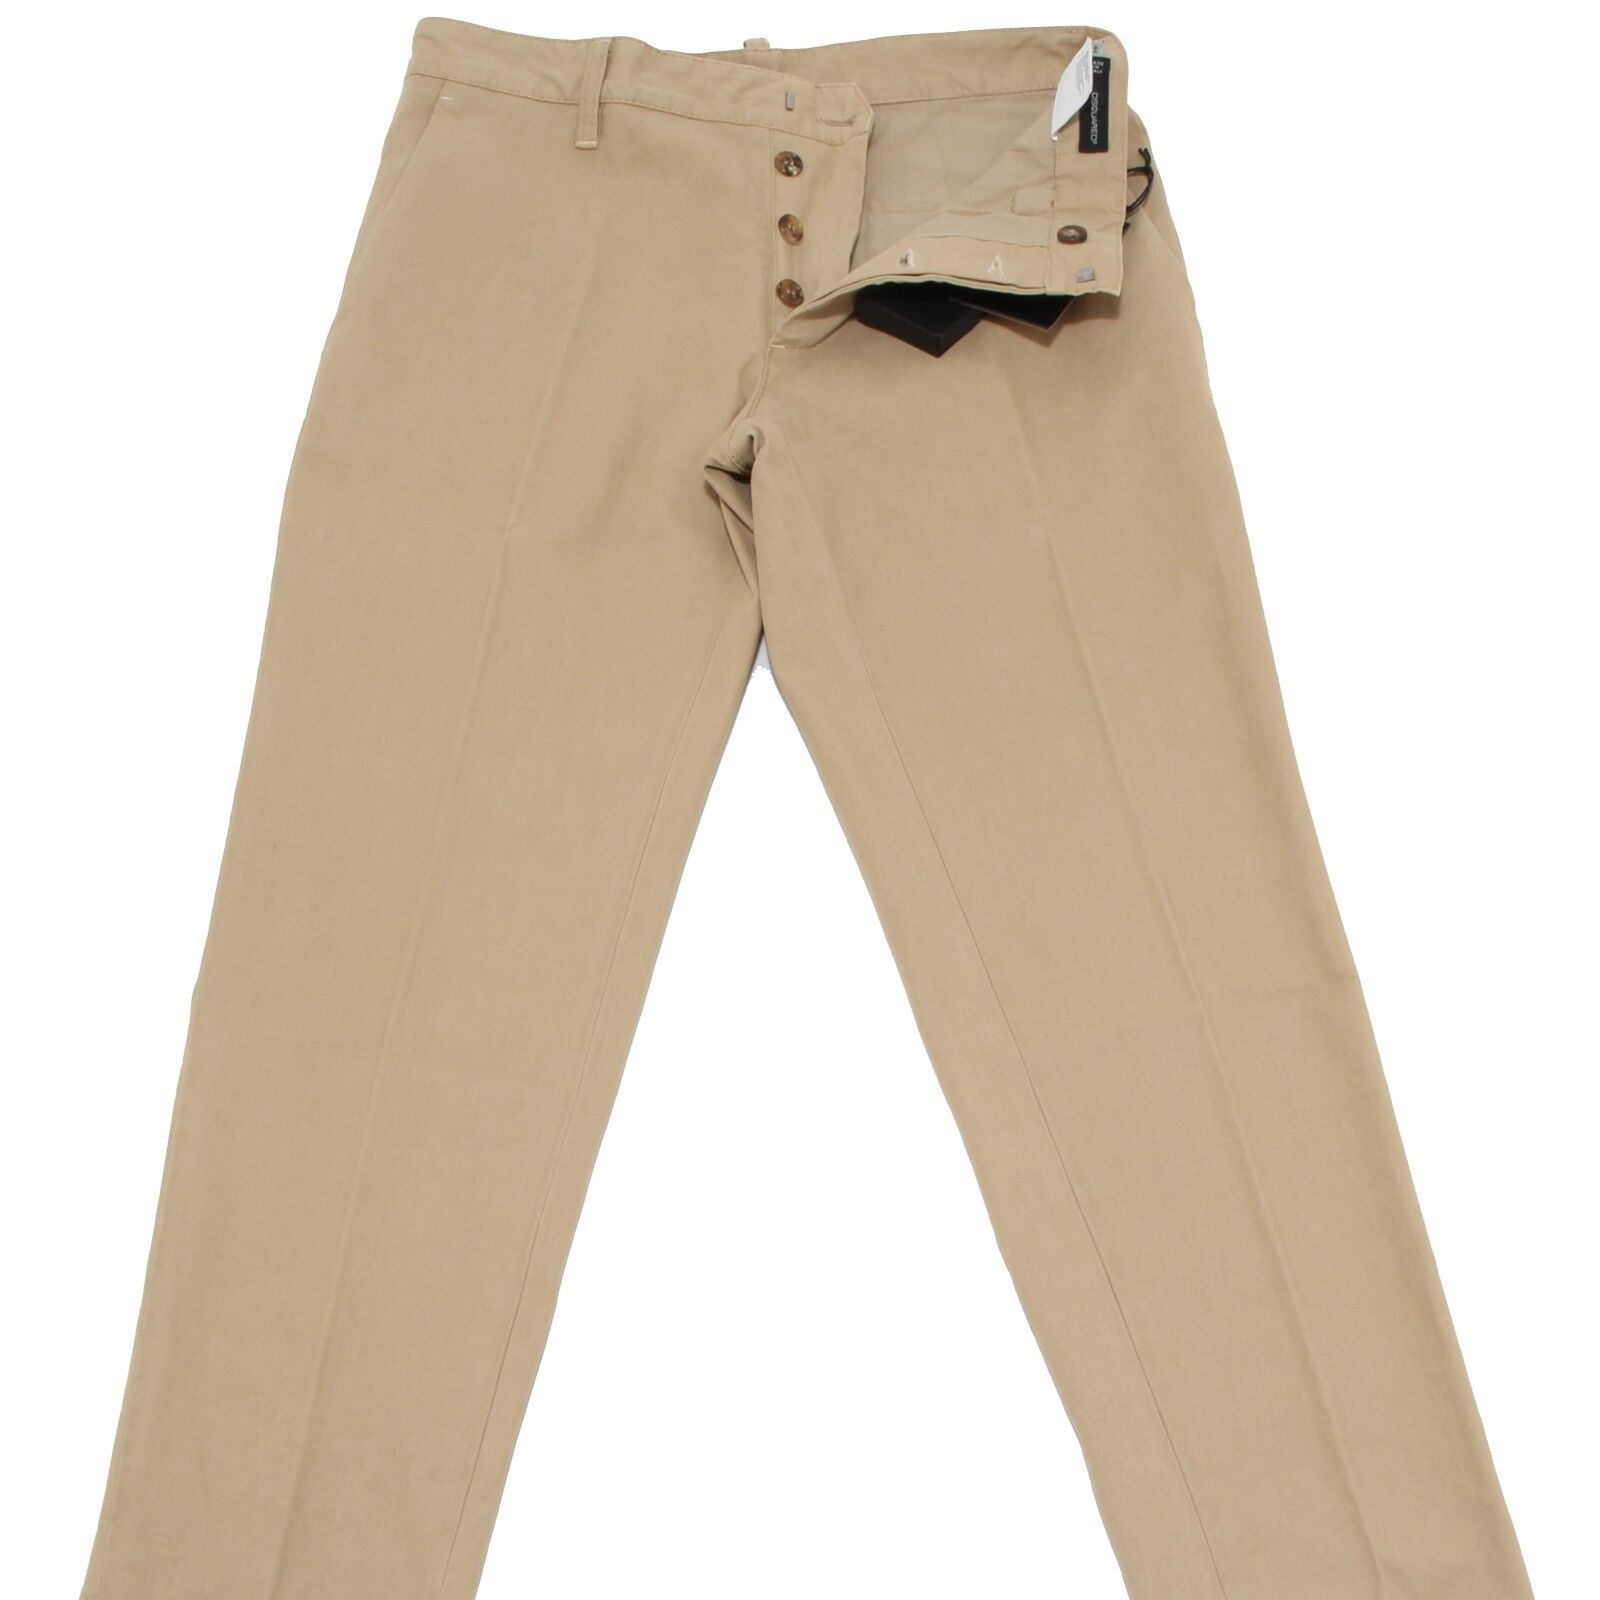 5082M pantaloni uomo DSQUARED D2 Uomo pants trousers